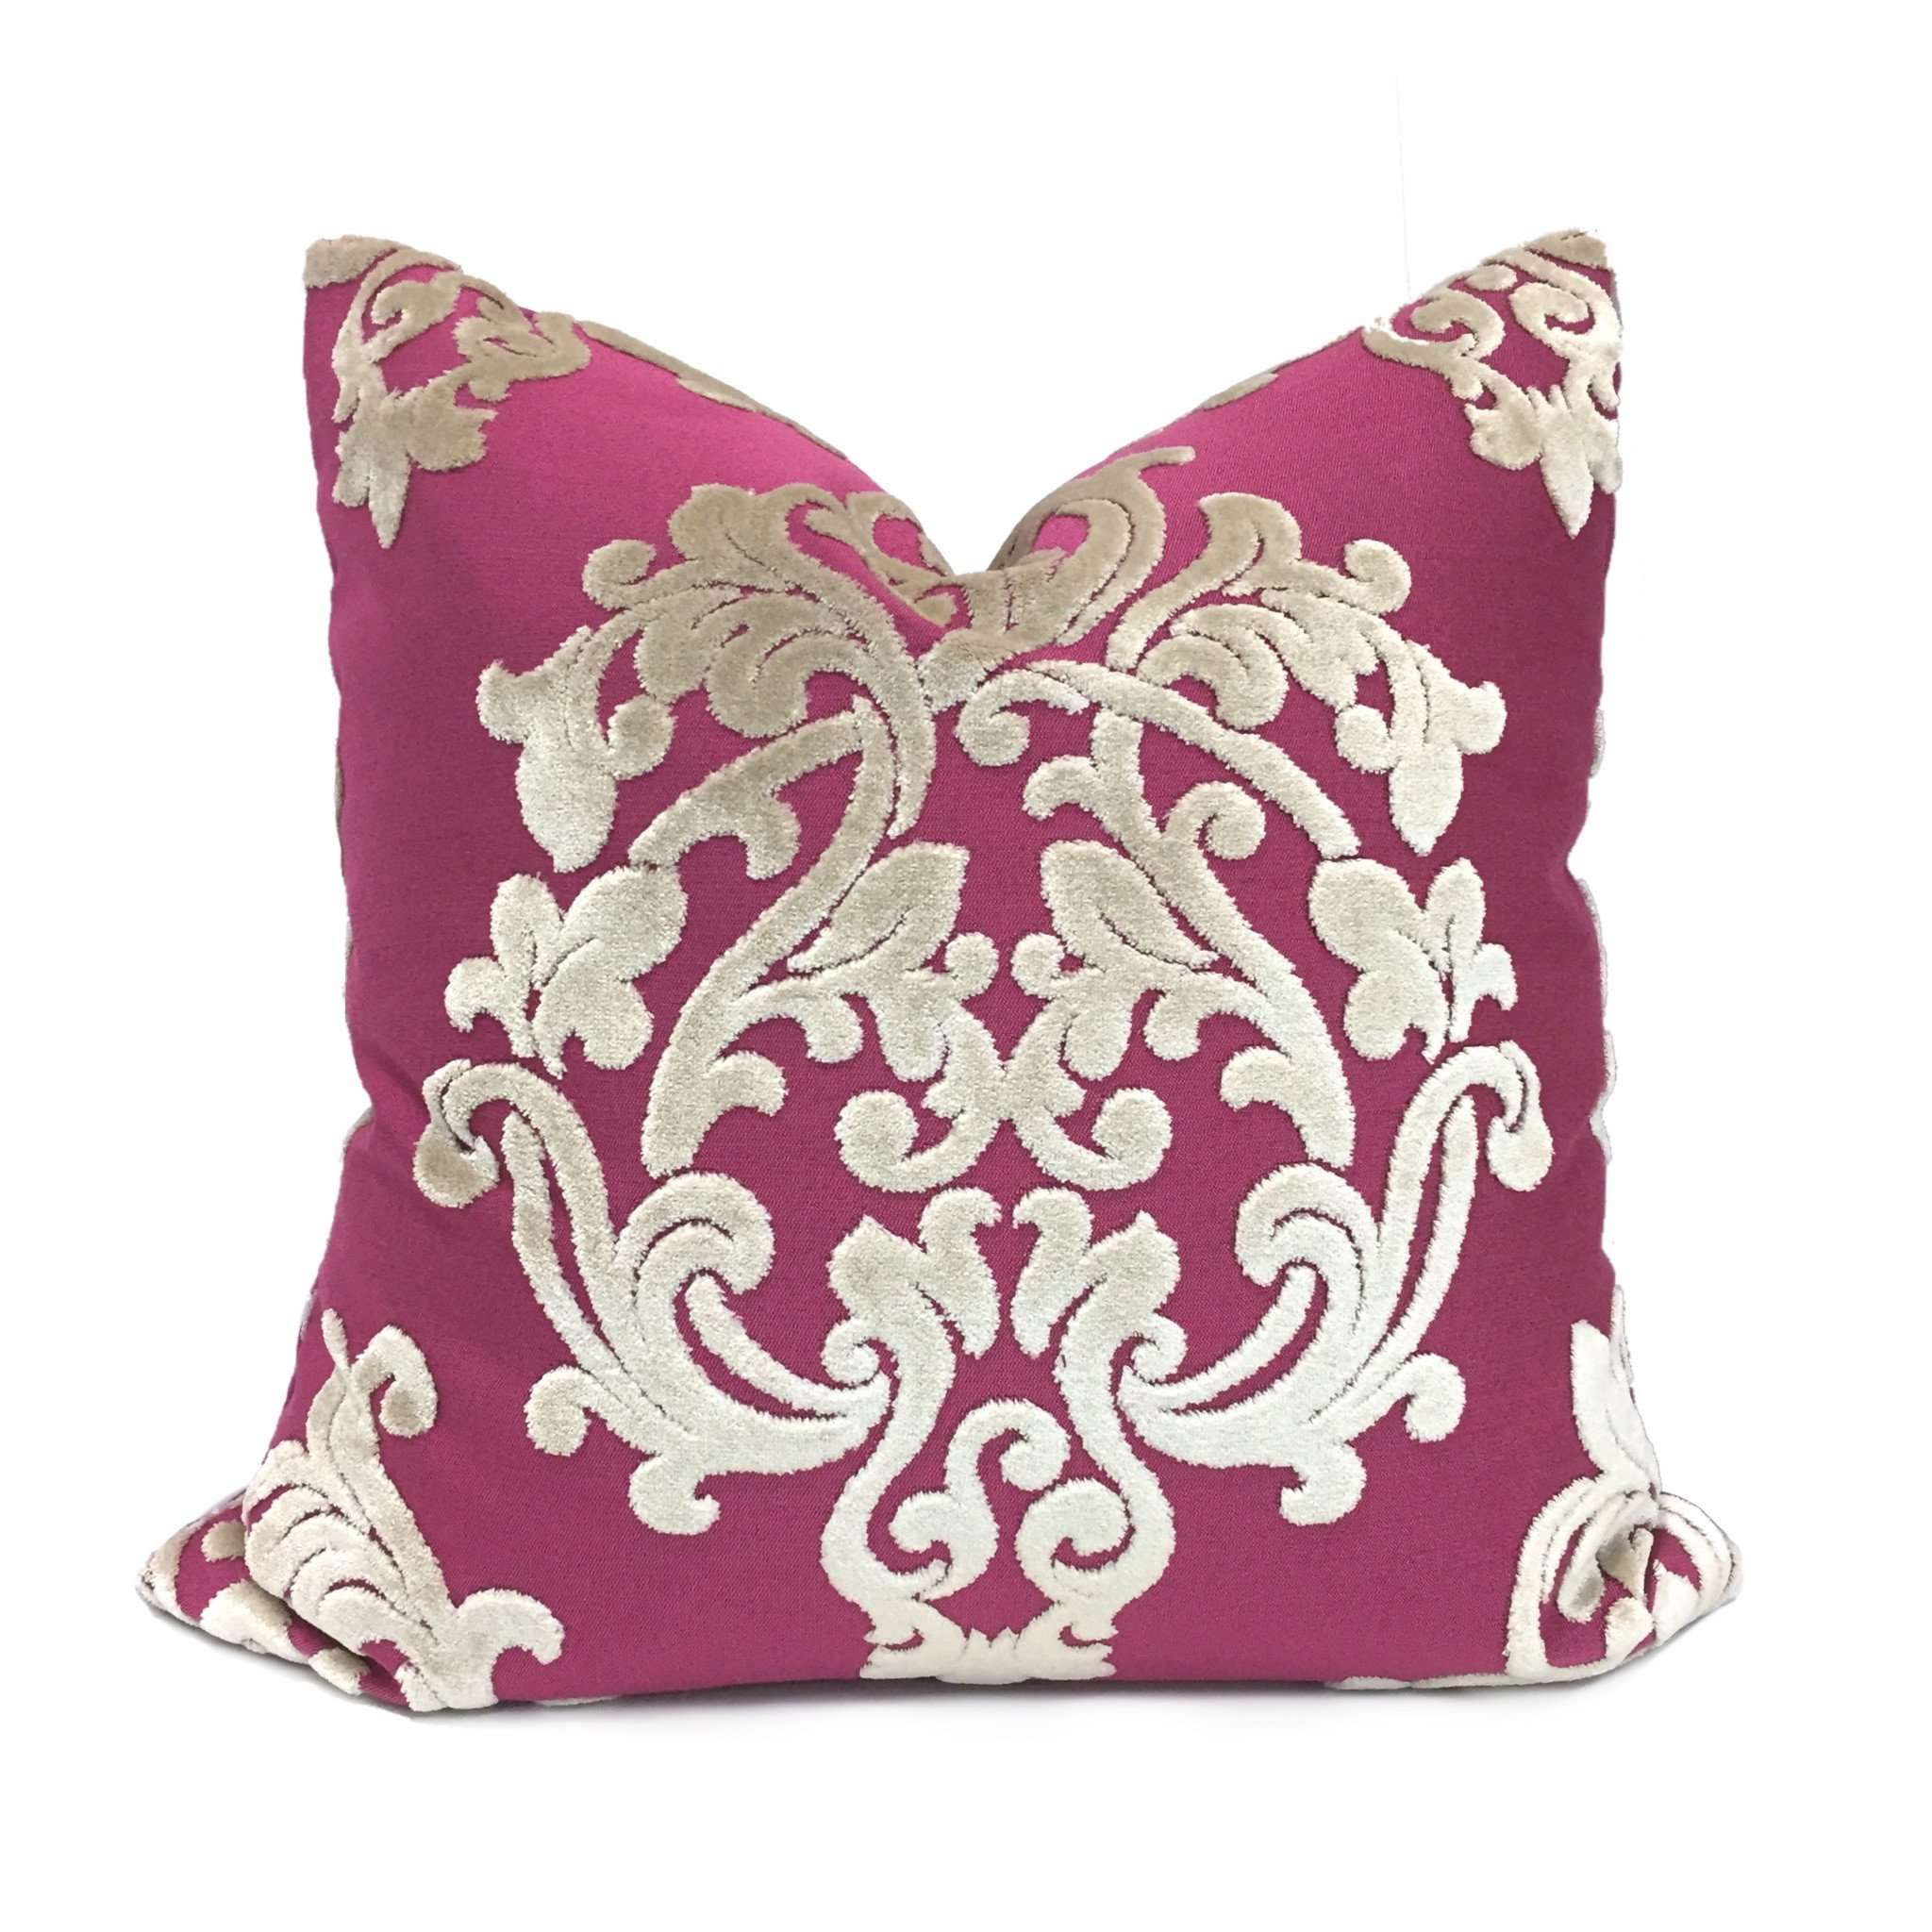 Robert Allen Royal Beauty Pink & Cream Damask Medallion Velvet Pillow Cover